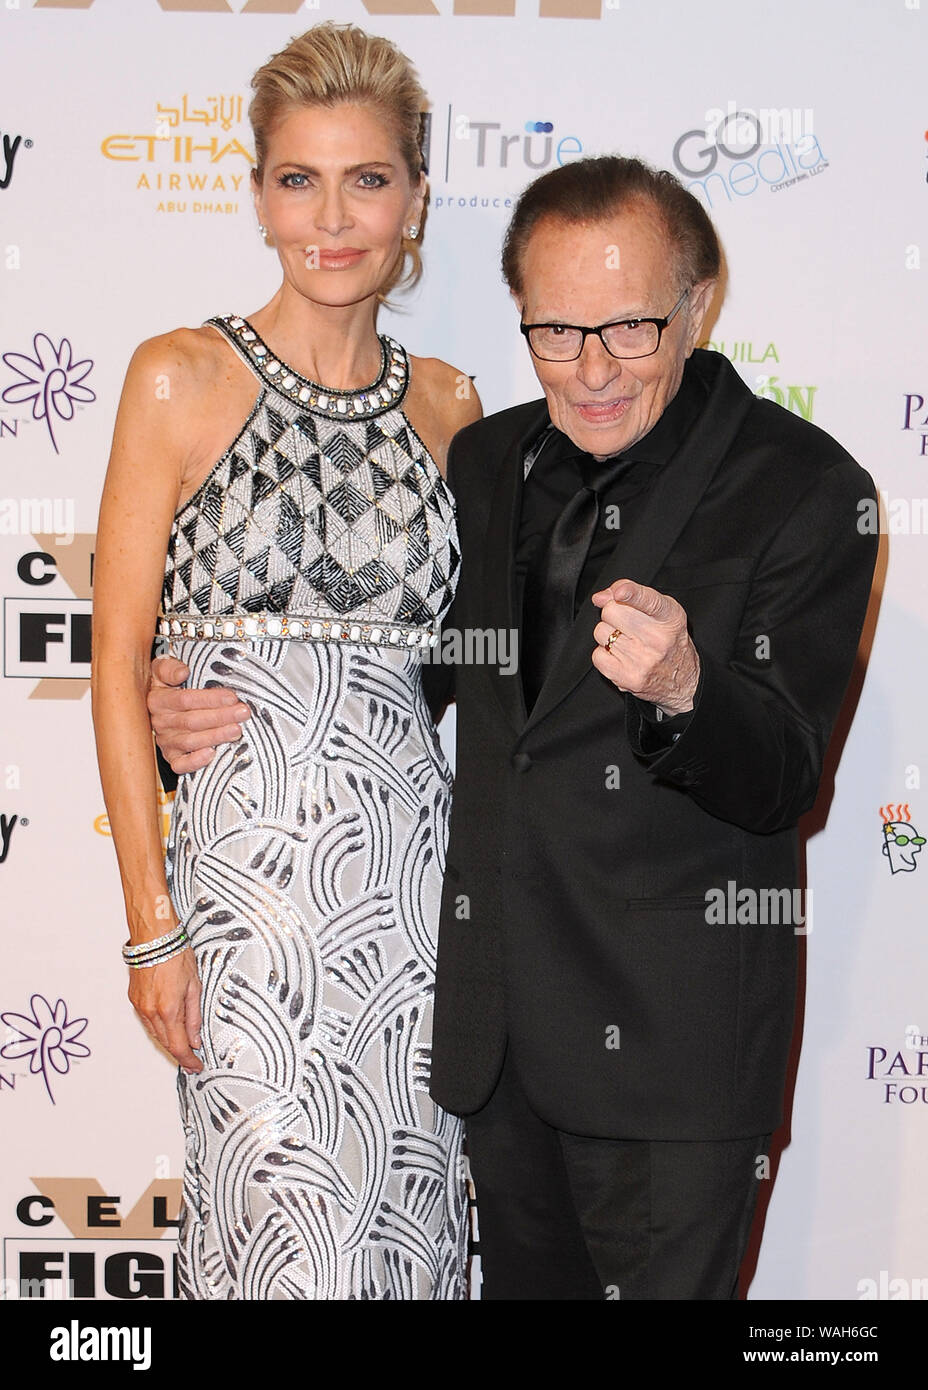 File Photo Larry King Files For Divorce From Wife Shawn King Phoenix Az April 9